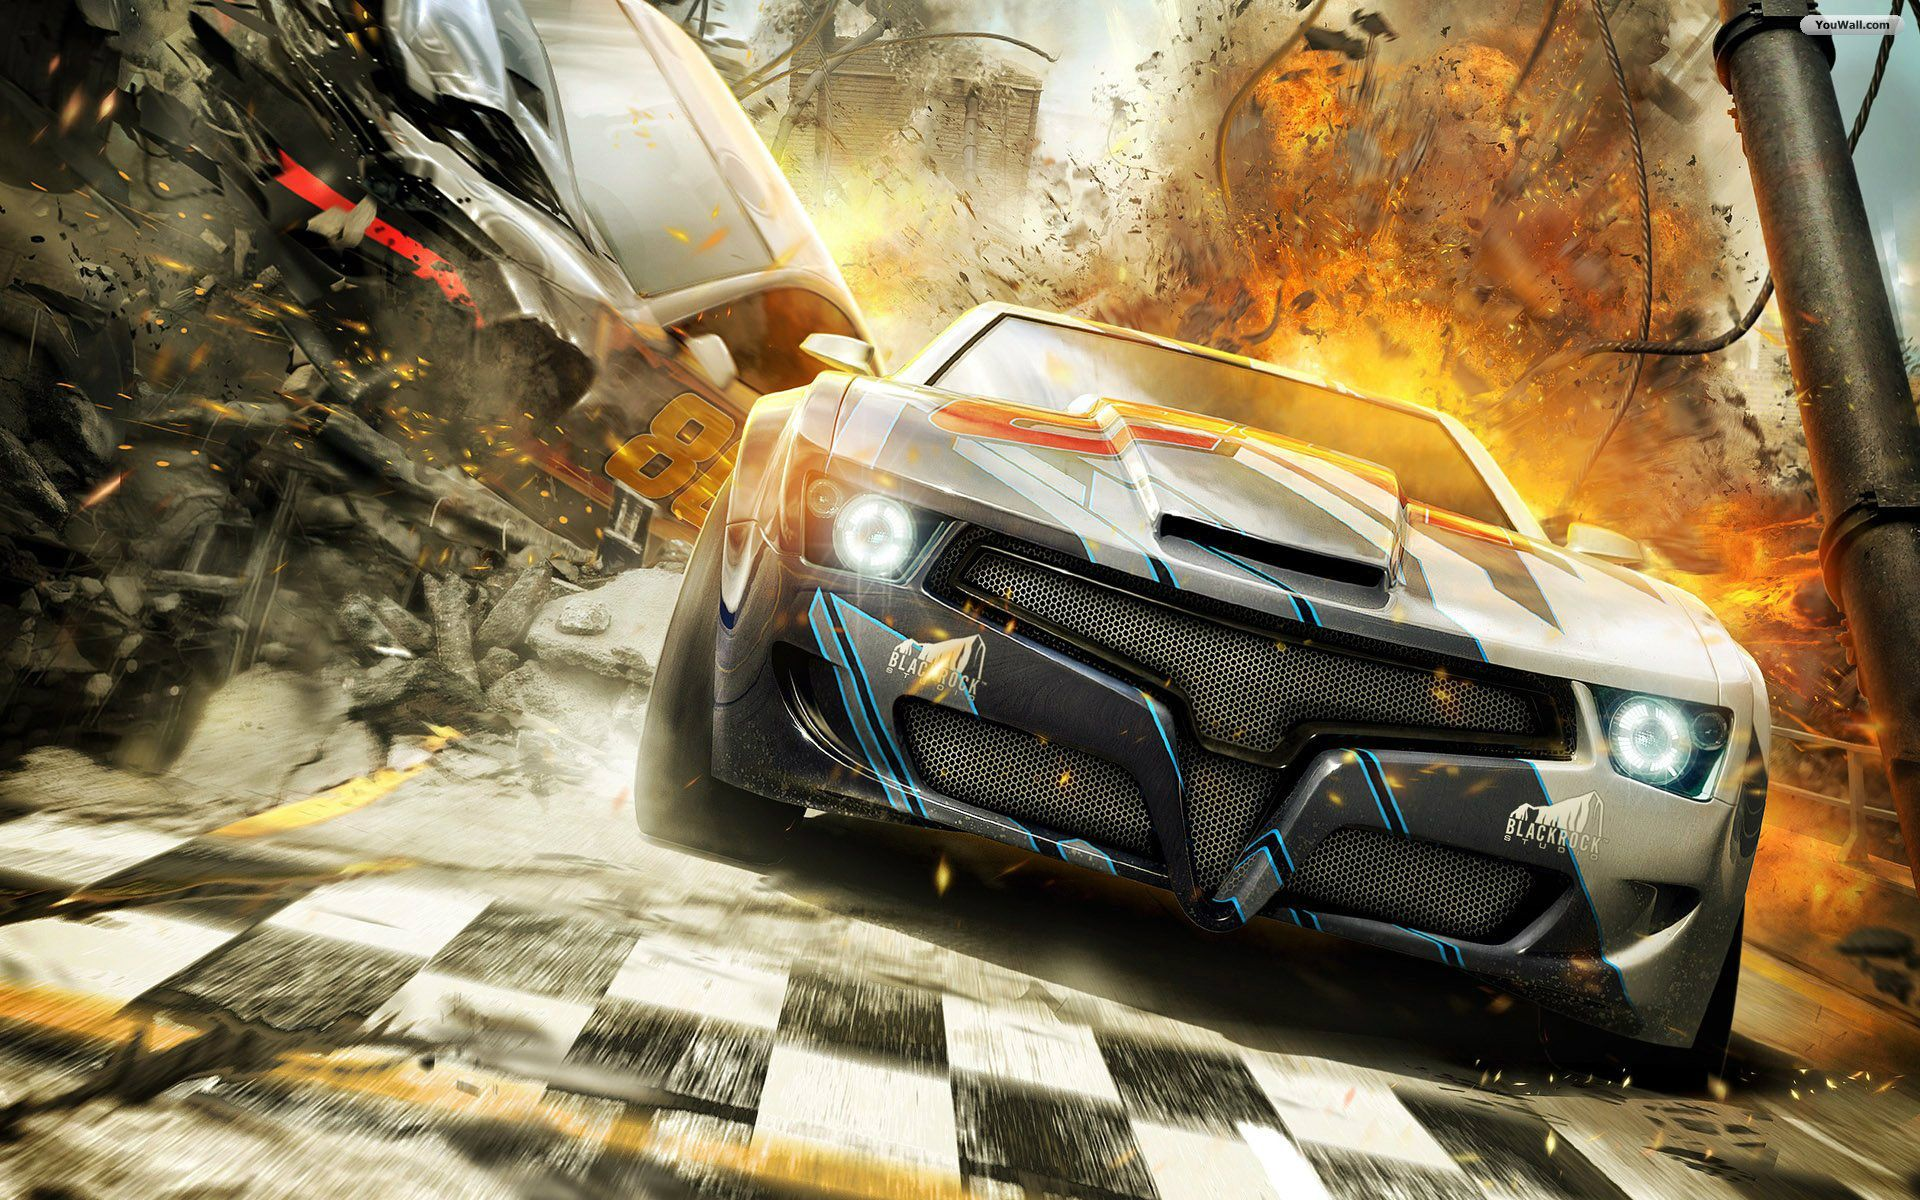 Free Download Car Racing Game Wallpaper Jpg 1920 1200 Sports Car Wallpaper Car Wallpapers Amazing Hd Wallpapers